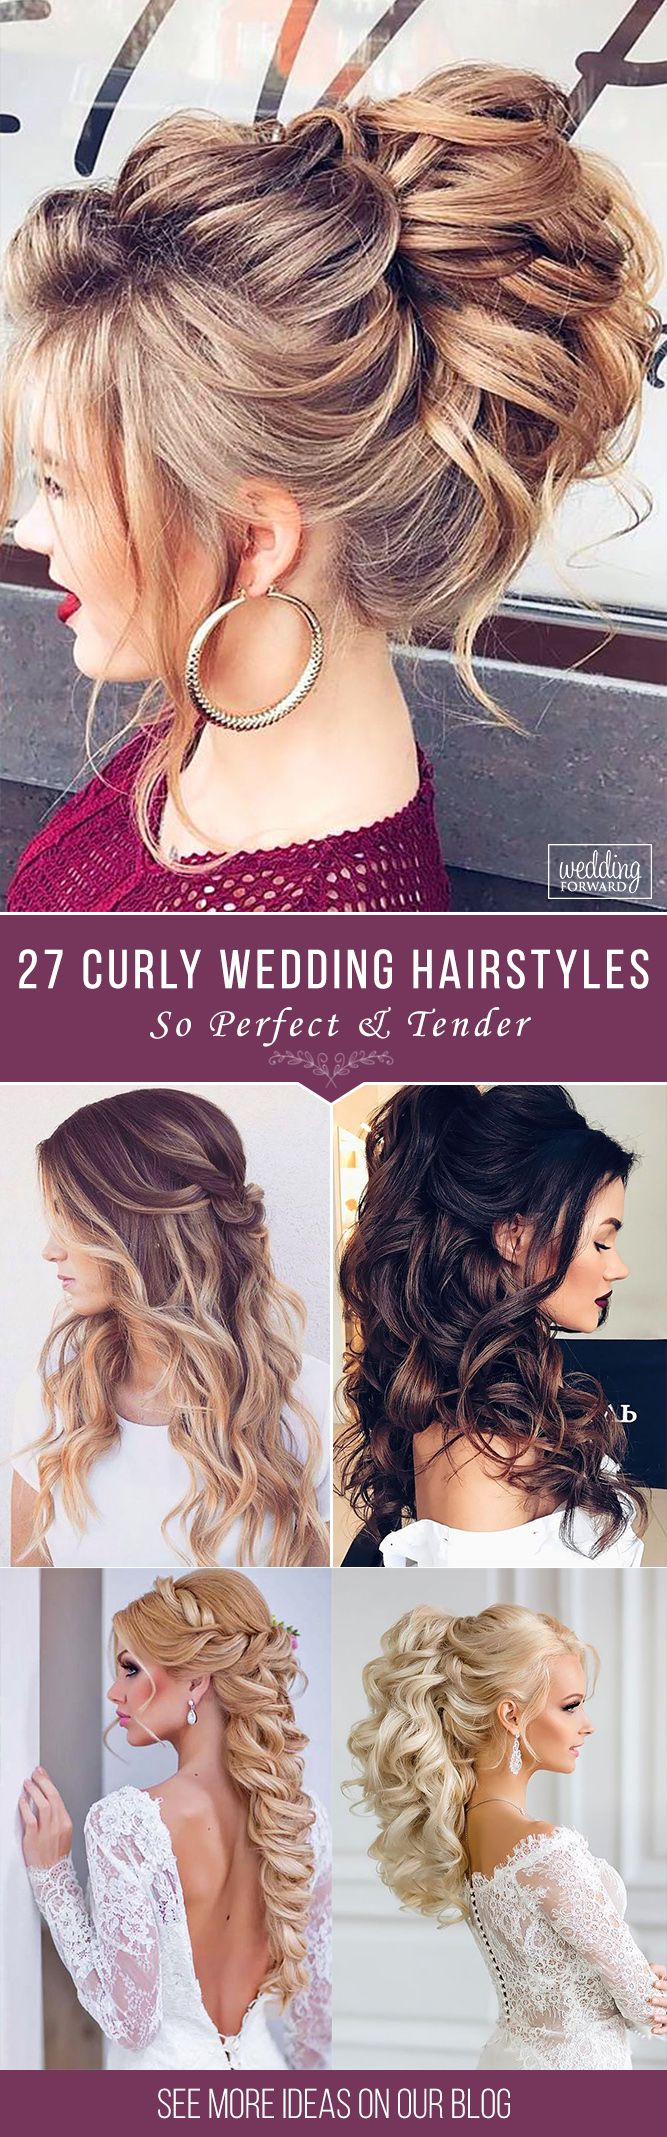 27 Oh So Perfect Curly Wedding Hairstyles ❤ Almost all of the curly wedding ha...